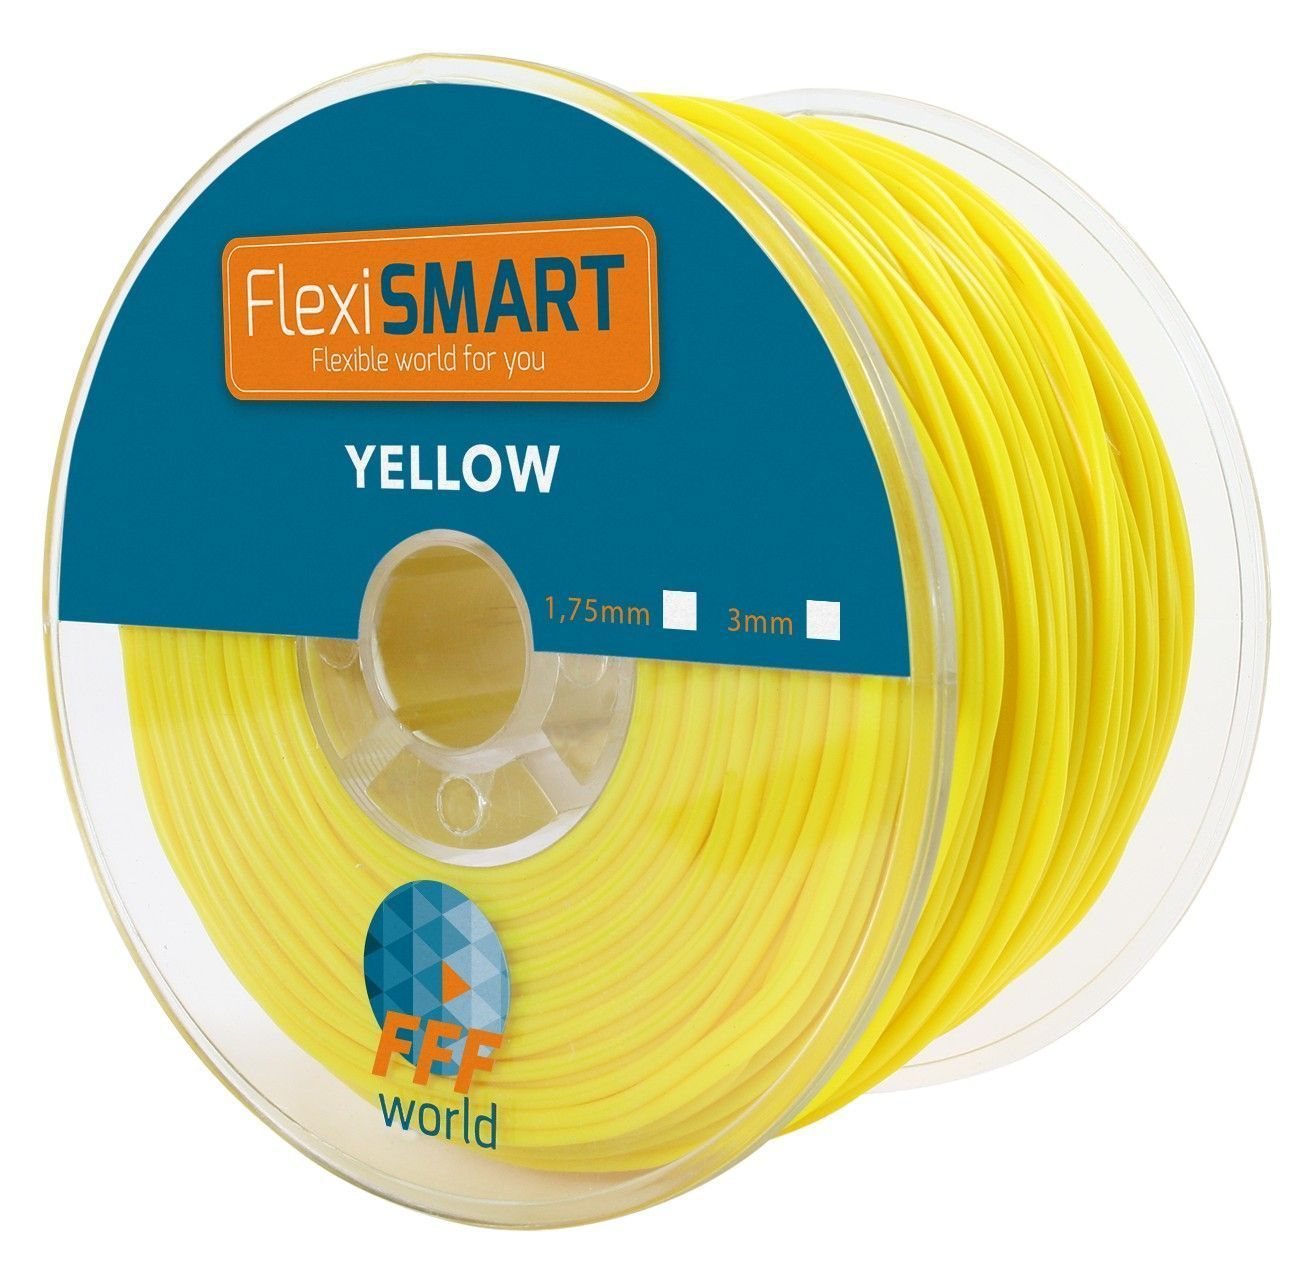 FFF World FlexiSMART